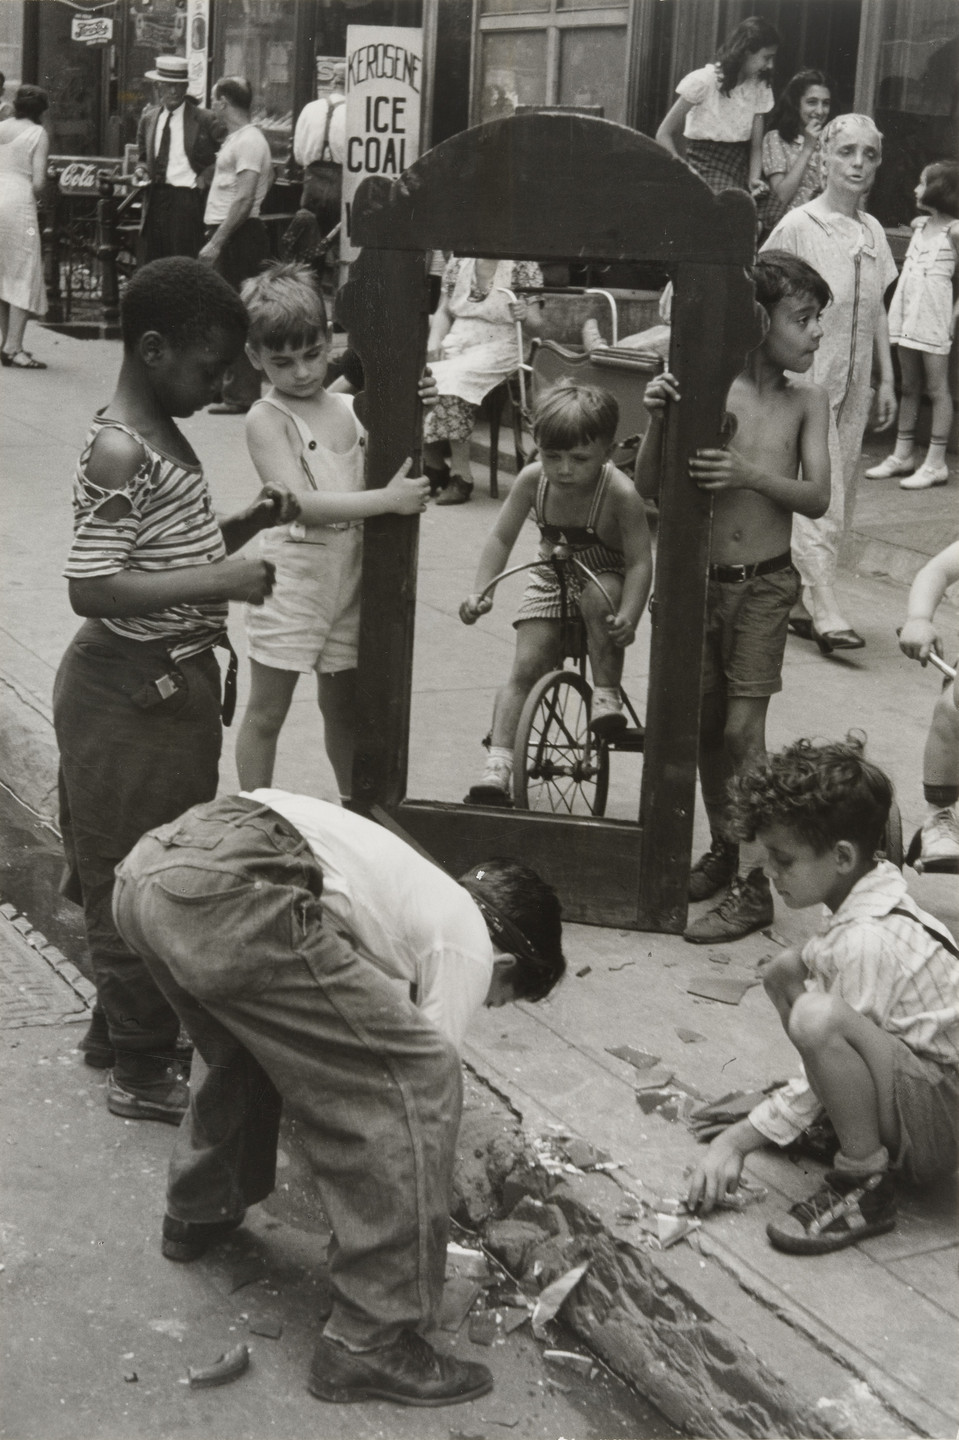 Helen Levitt. New York. c. 1940